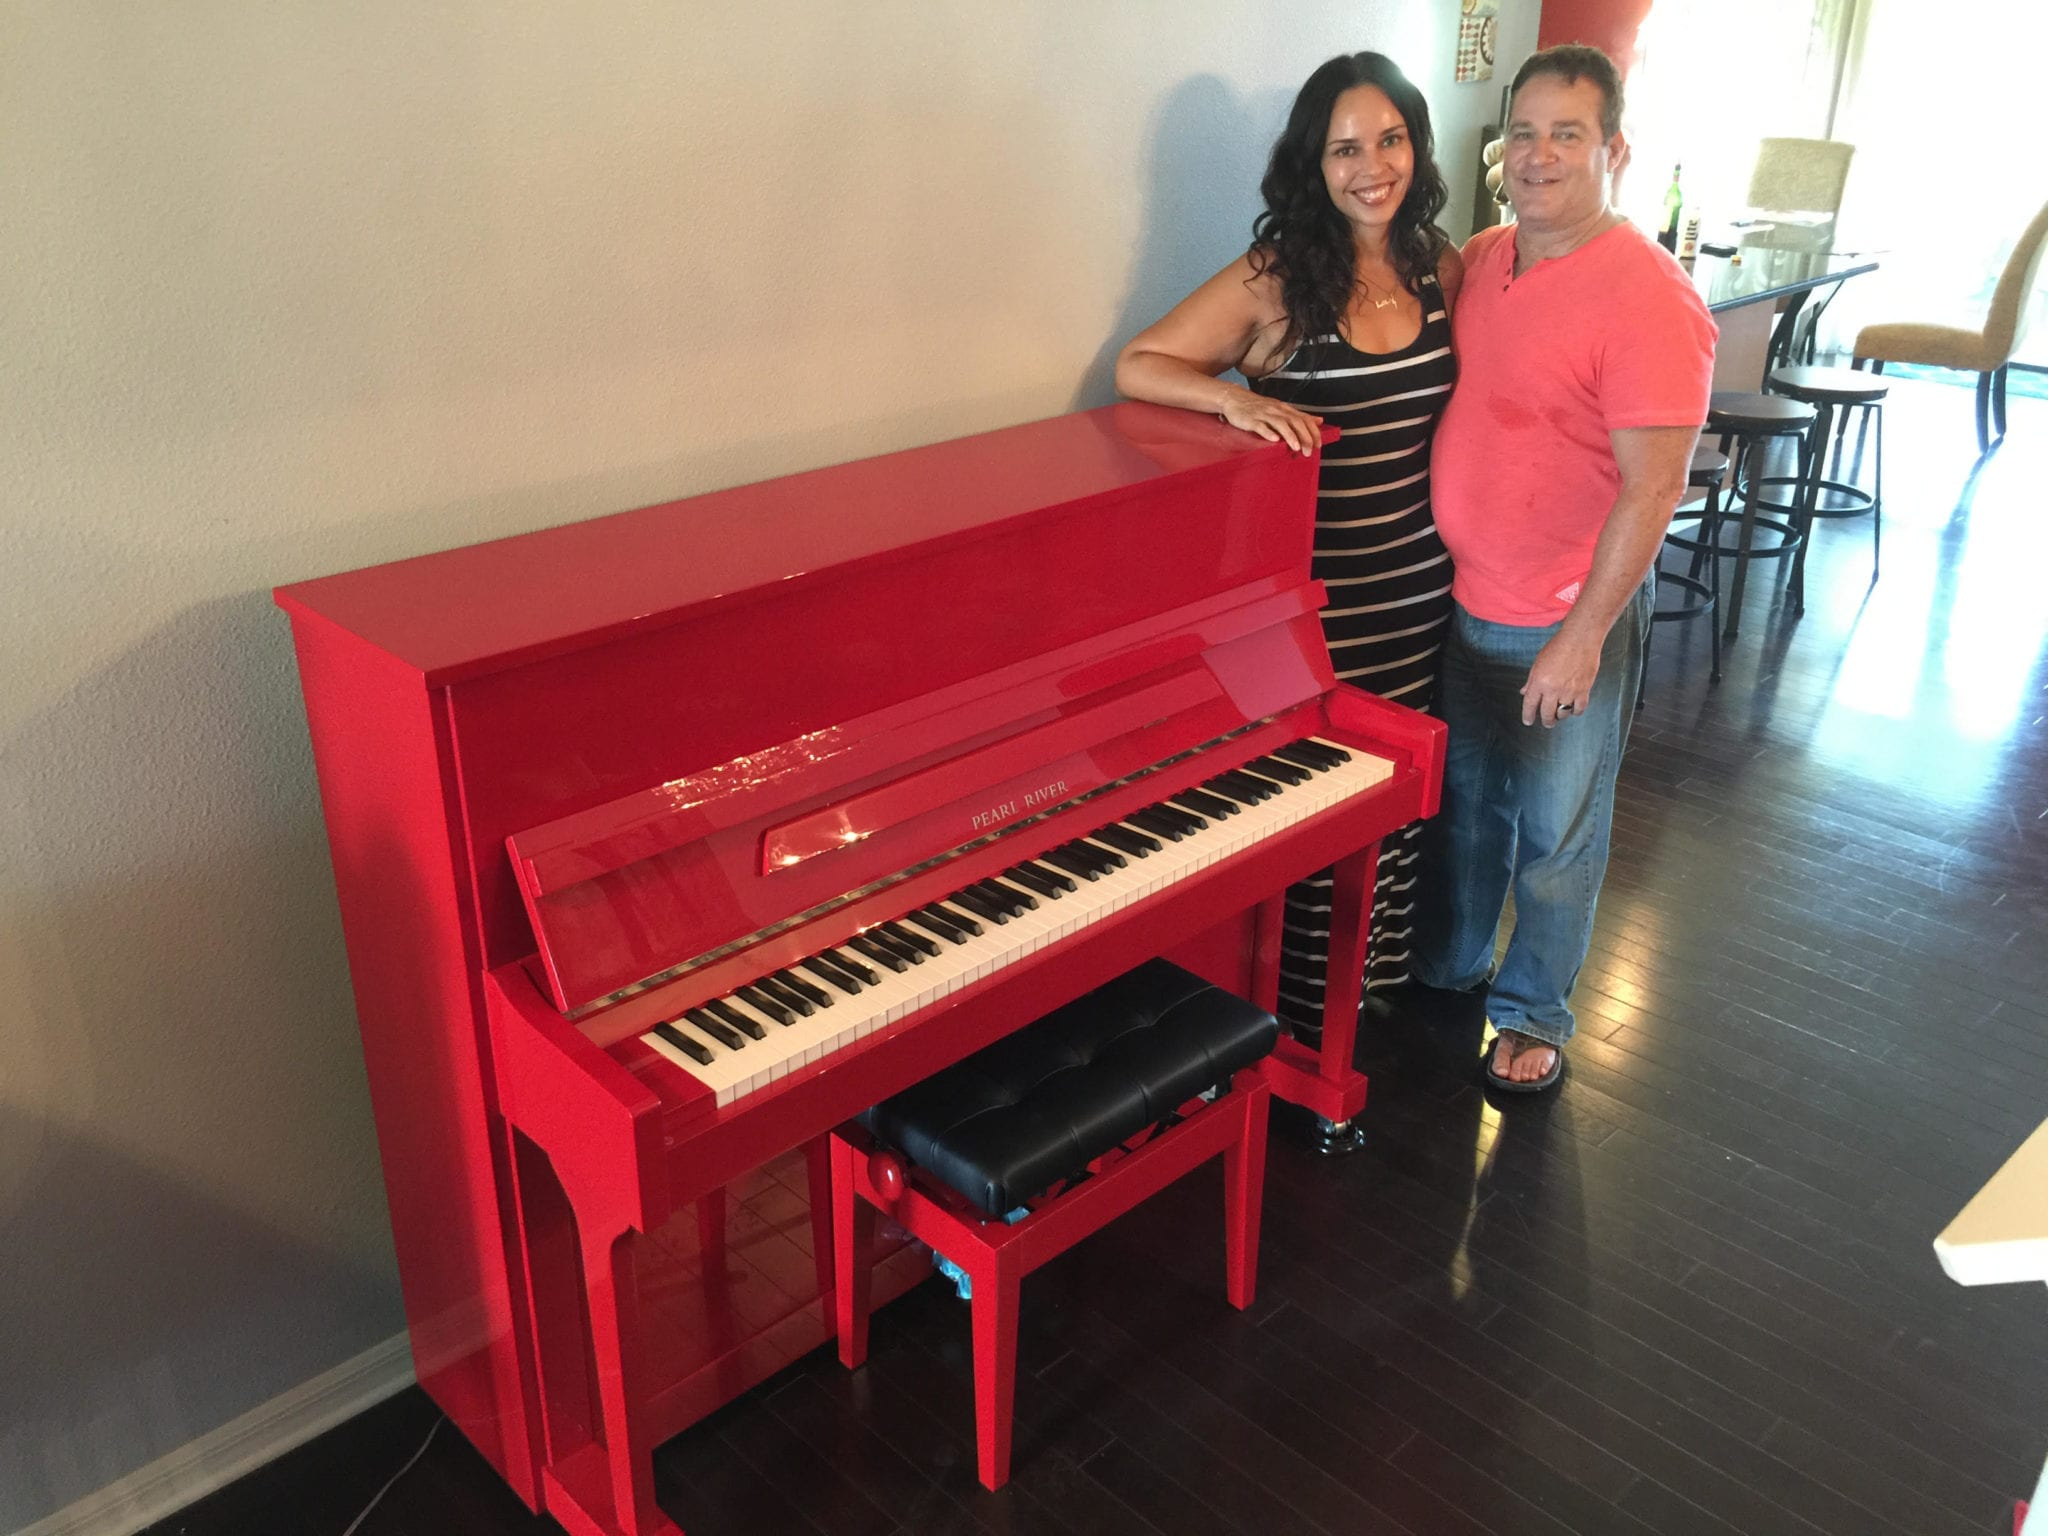 Limited Edition Pearl River Studio Piano Gets New Home